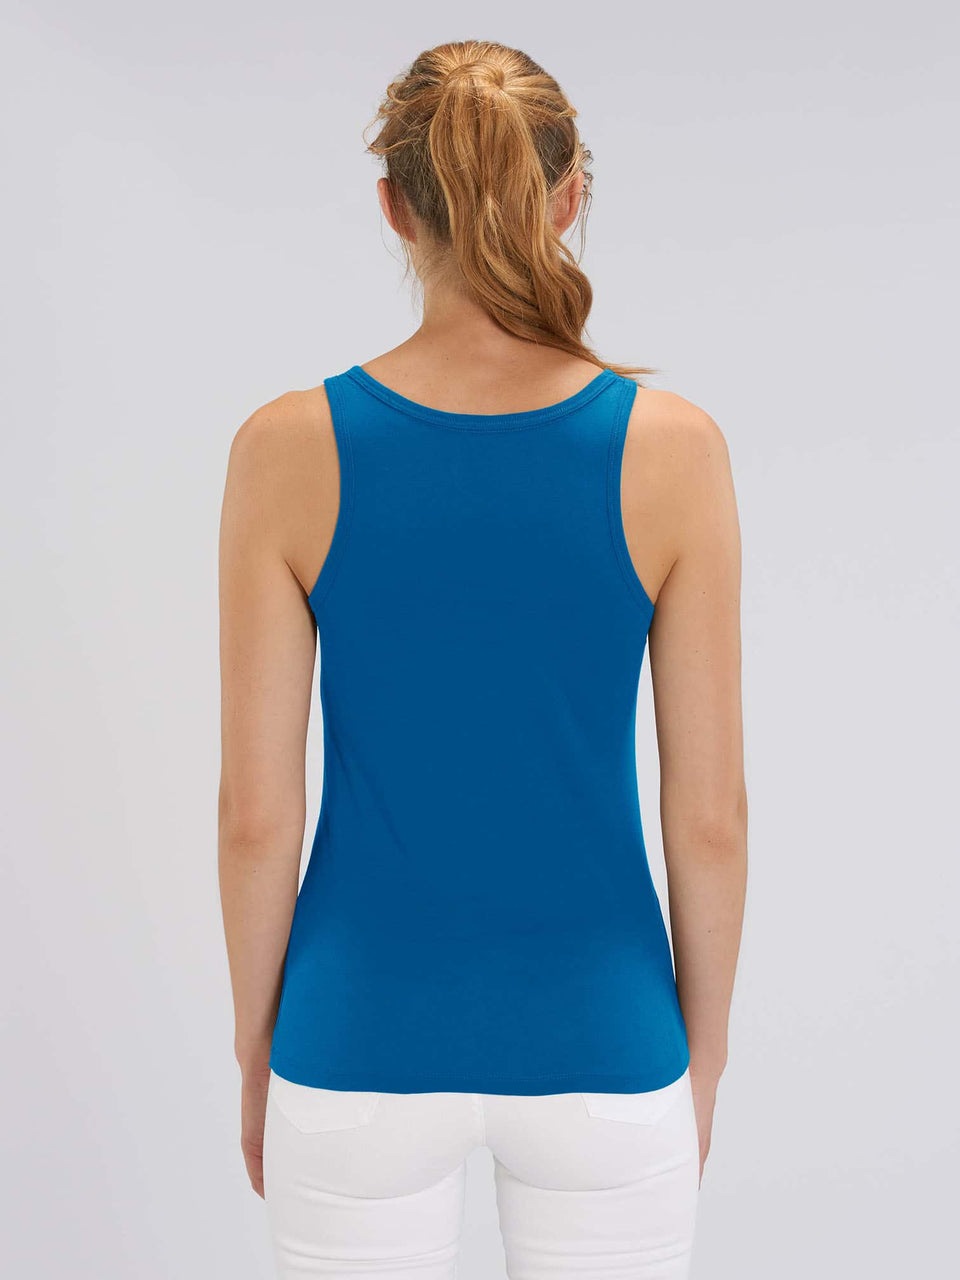 Bufo Alvarius Made To Order Women Tank Top - Royal Blue